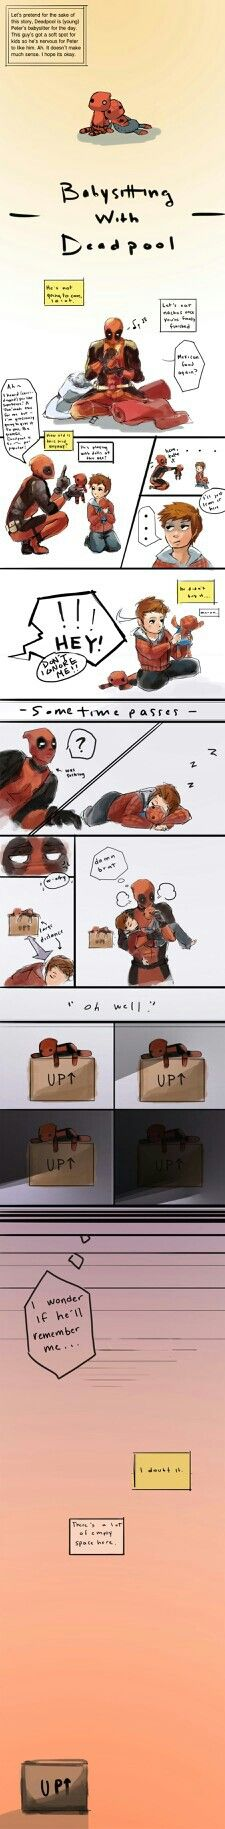 122 best spideypool images on Pinterest   Marvel dc, Spideypool and The avengers